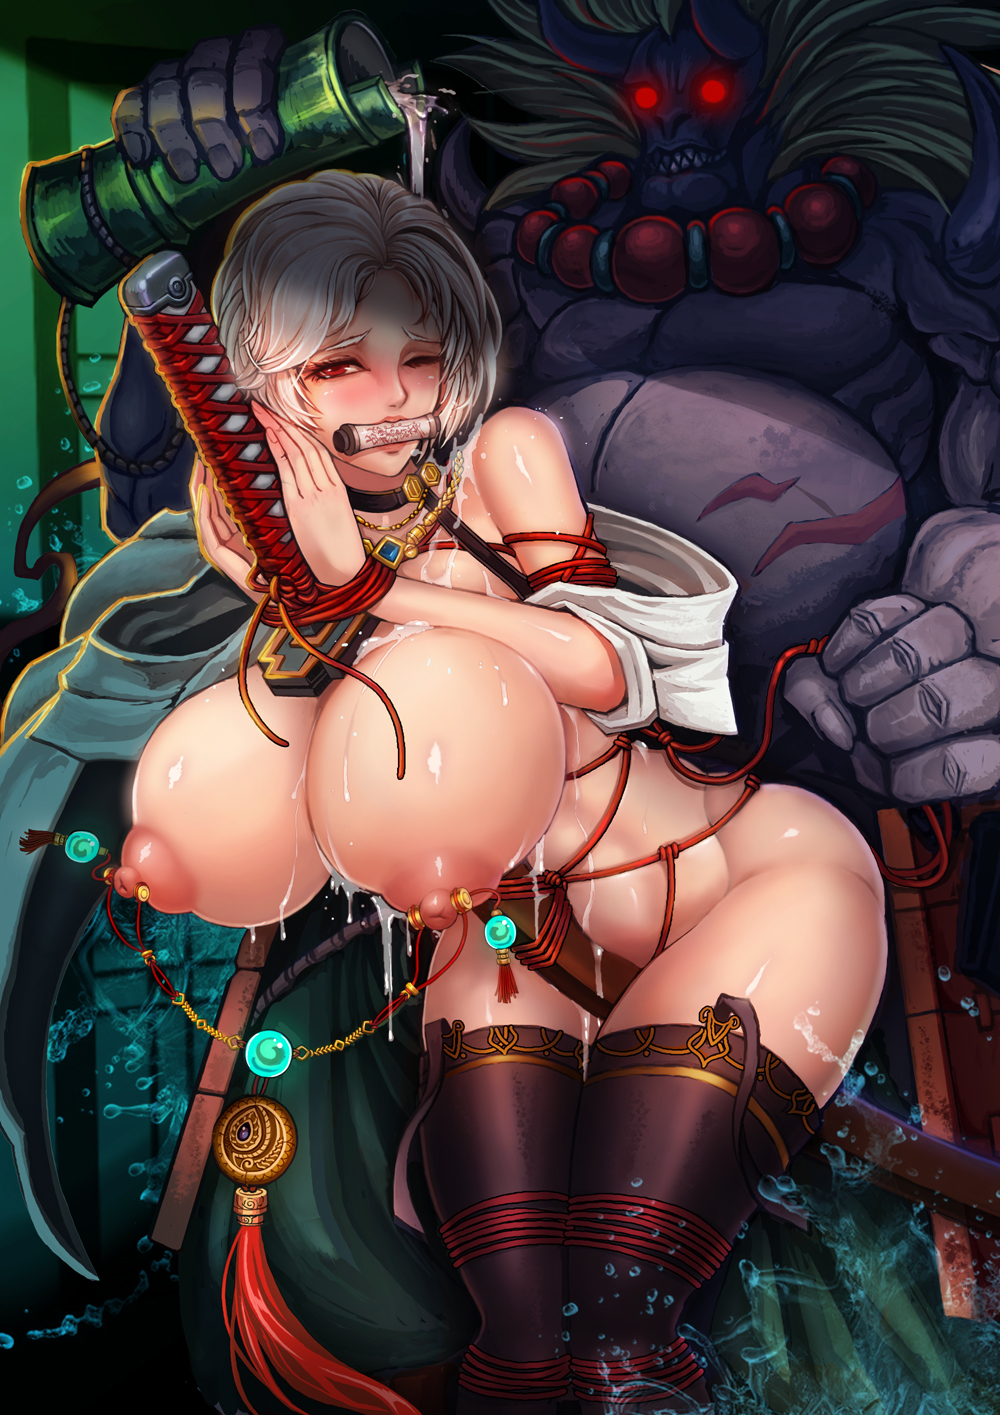 camed and farded i shidded and Seven deadly sins porn gif